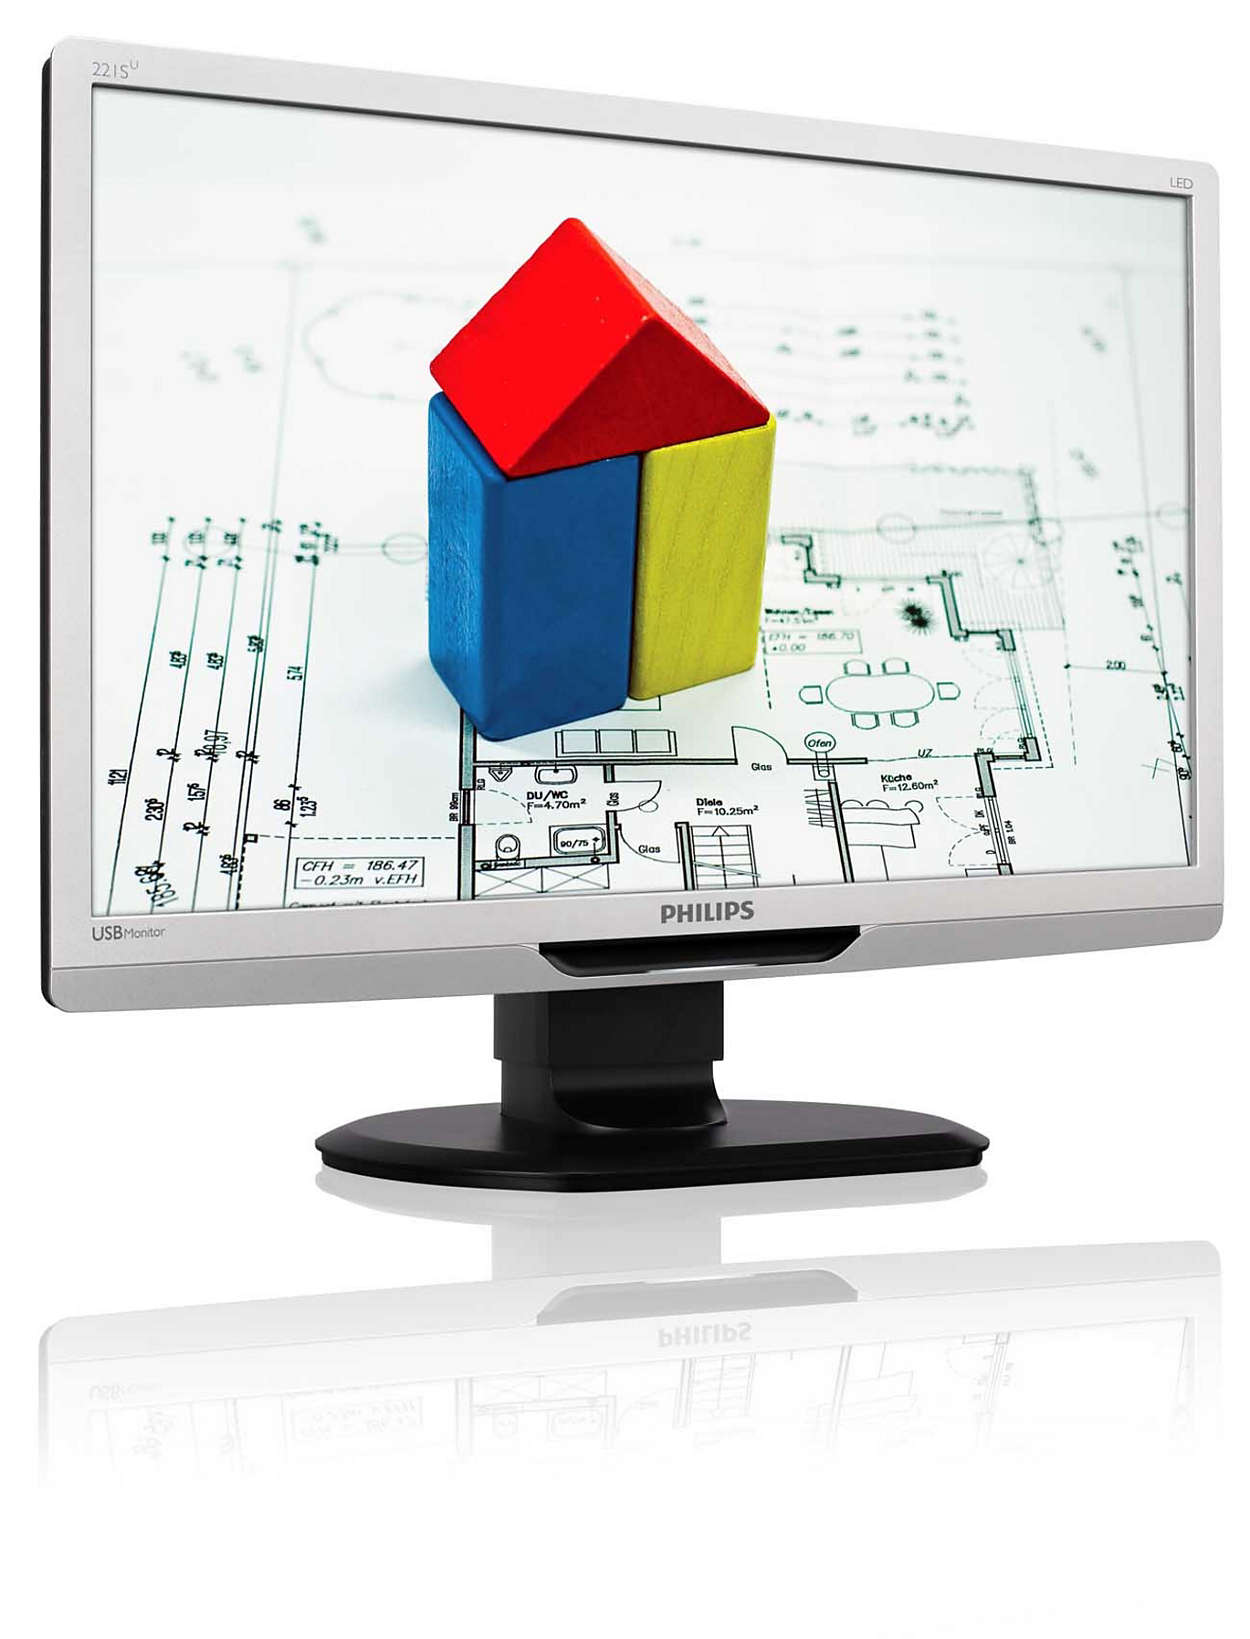 Simplicity with USB monitor